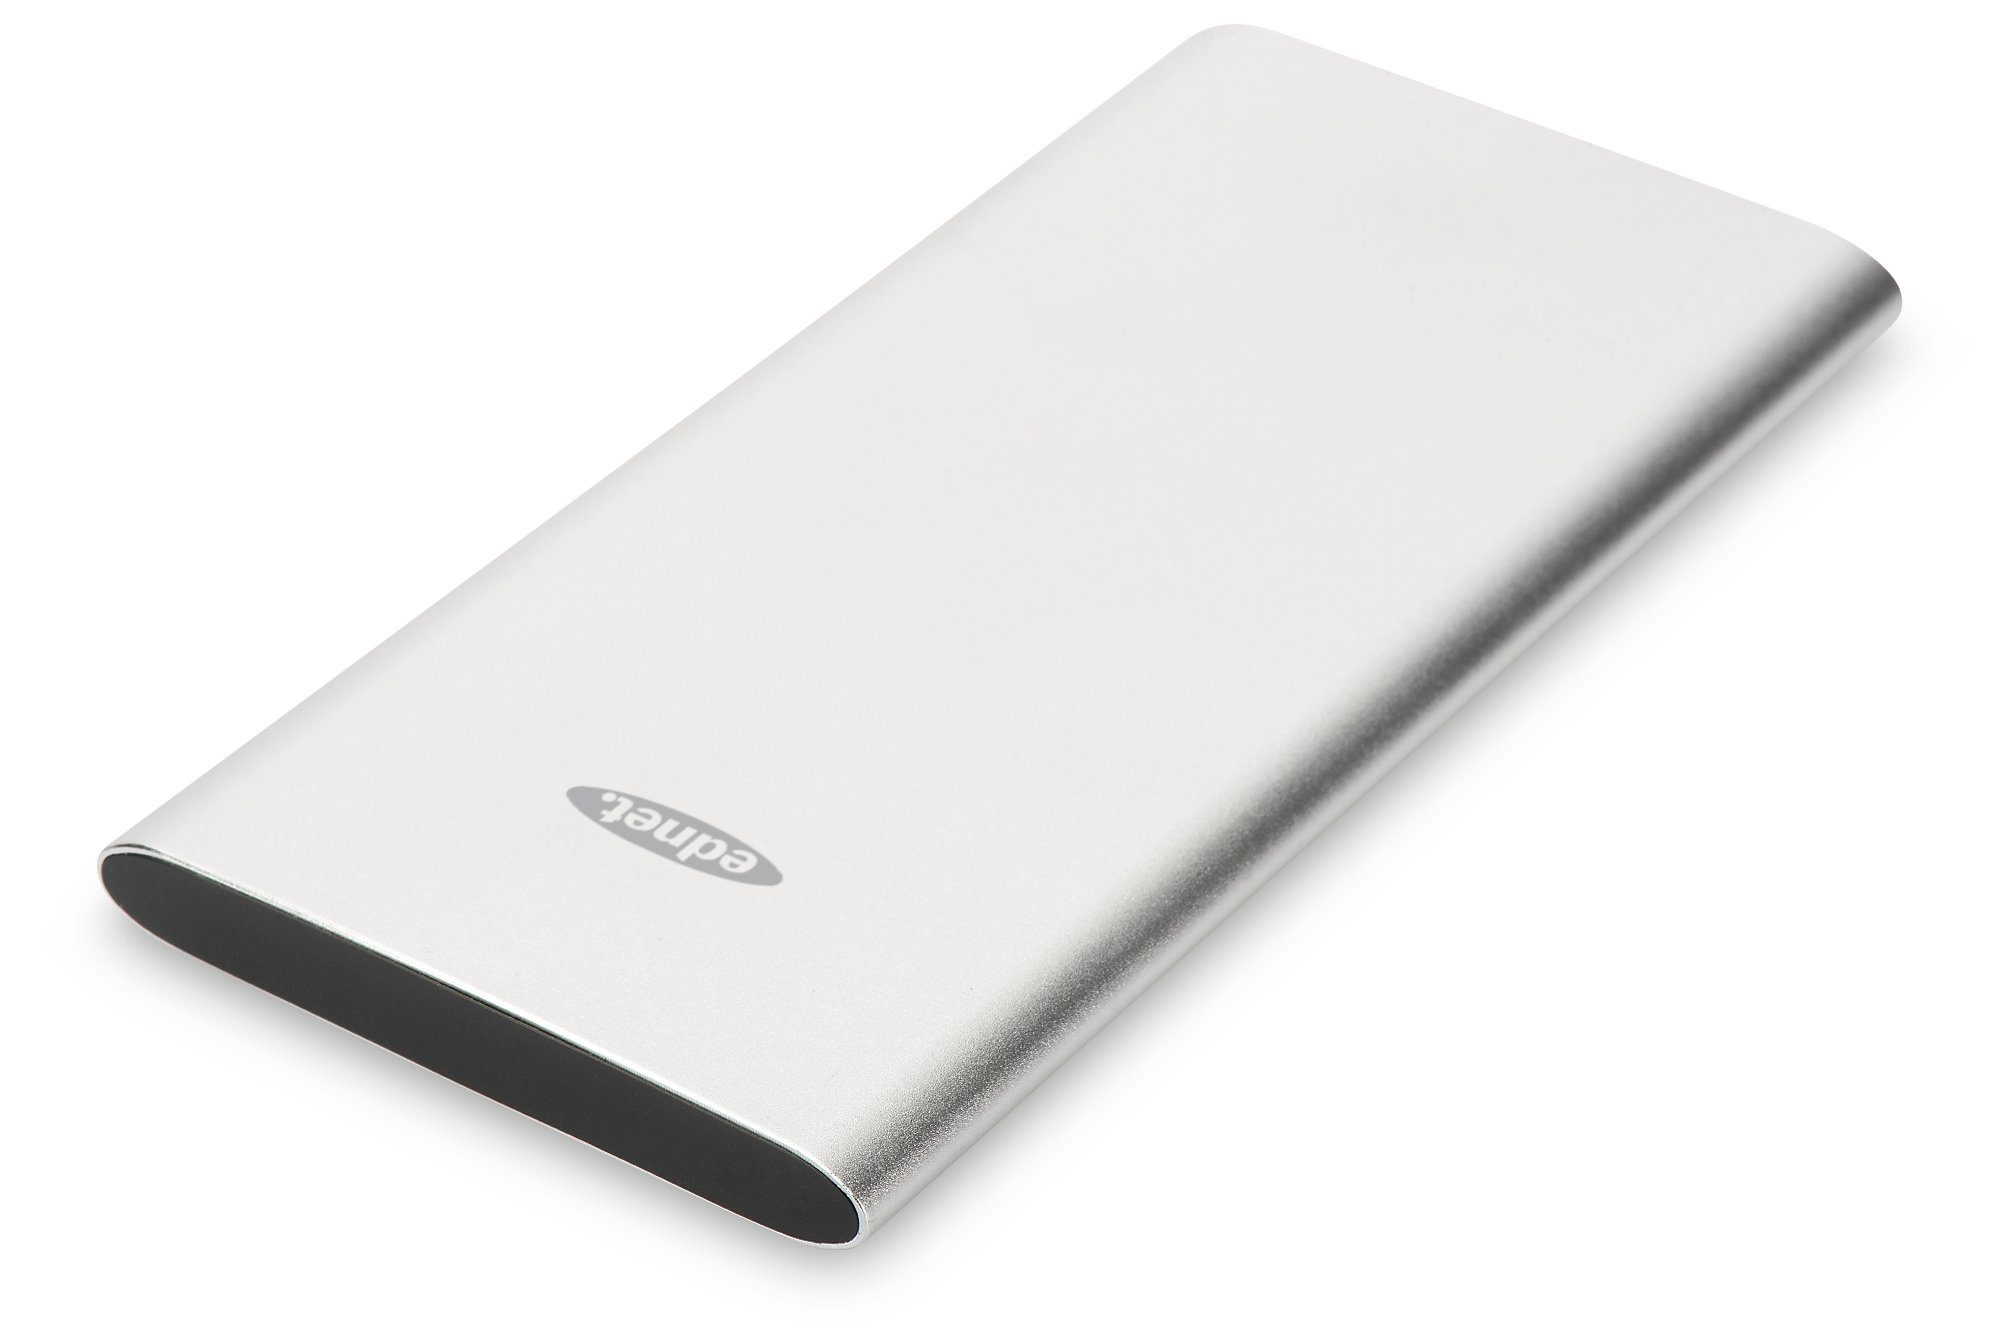 Ednet Powerbank »Ednet Slim Line Aluminium Power Bank silber«